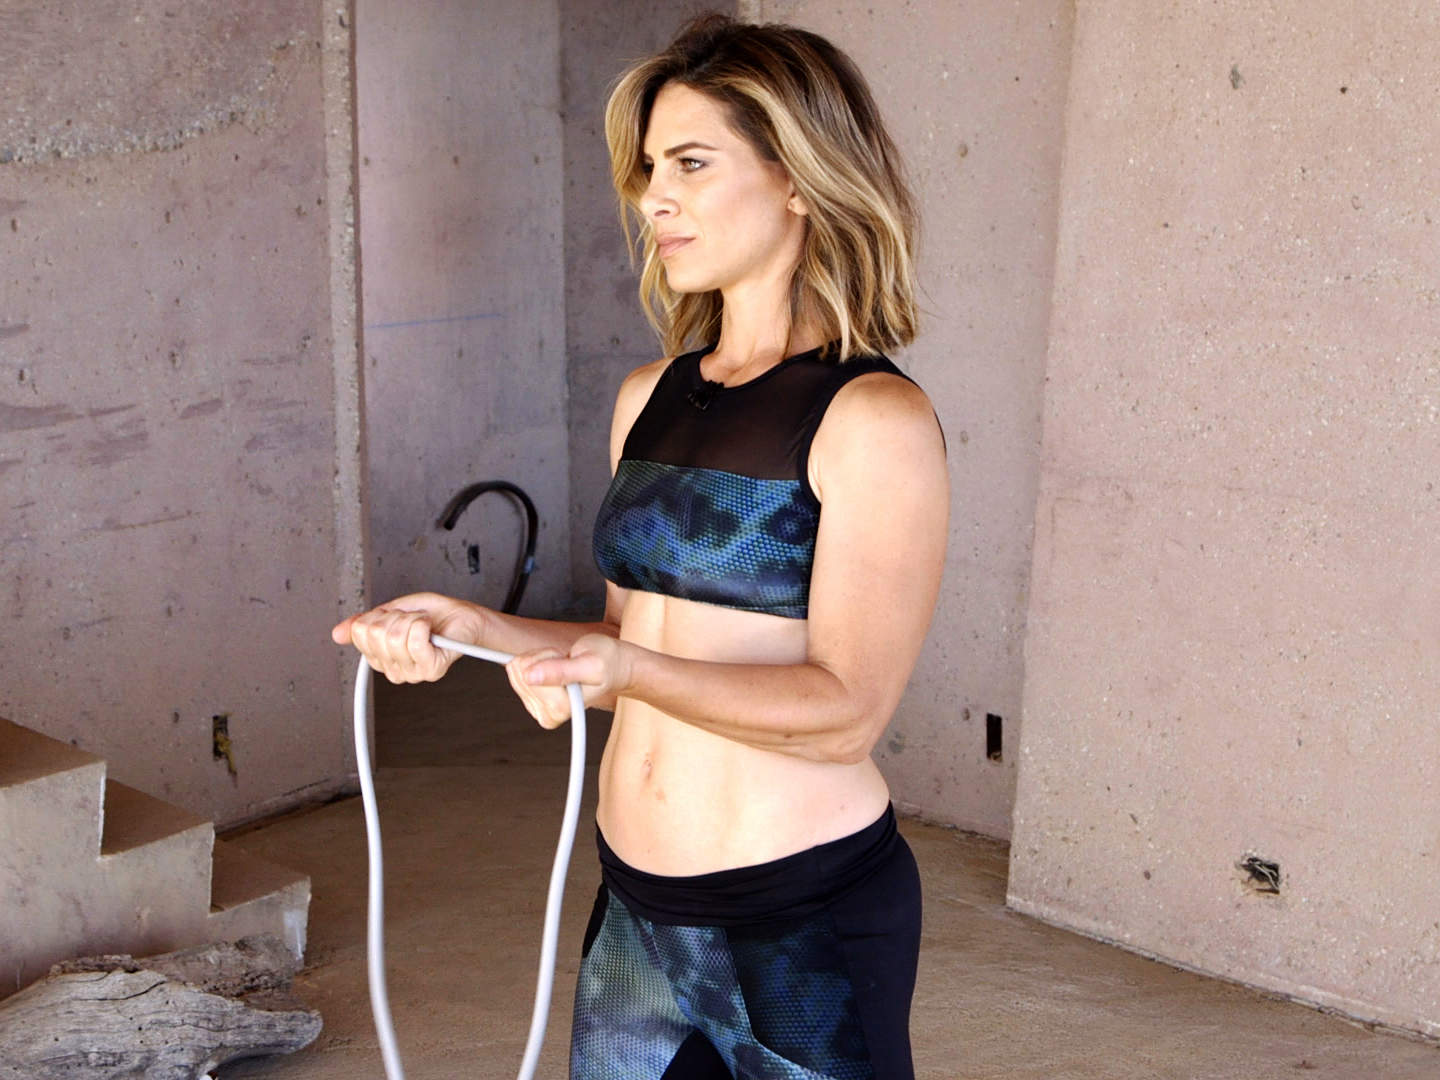 jillian-michaels-video-sumo-squat-with-rotator-fly-2